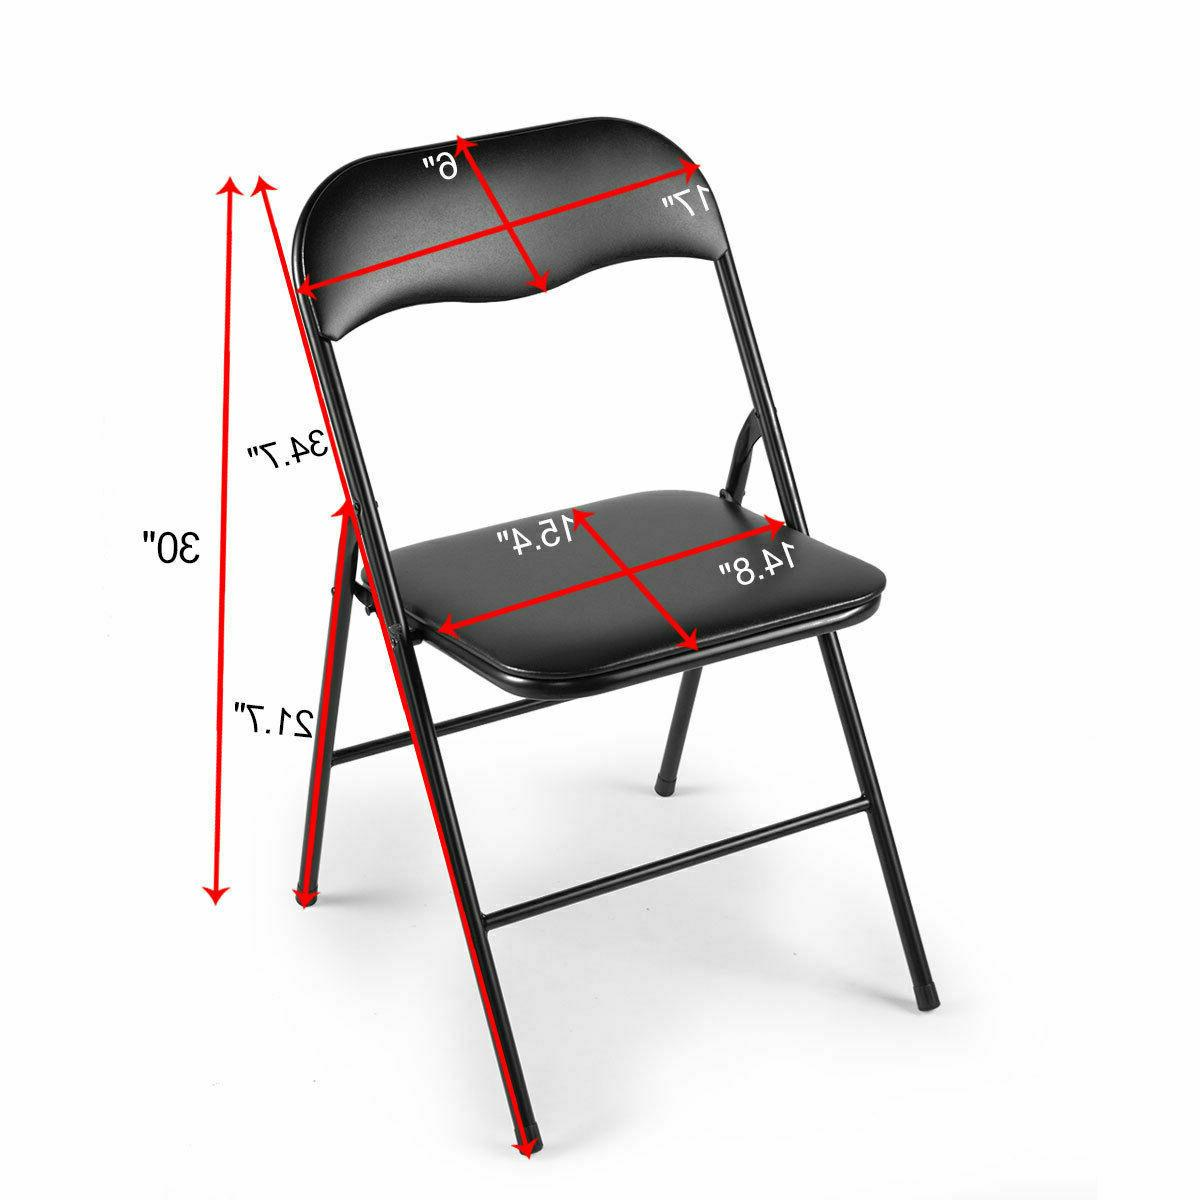 Commercial Black Folding Chairs 4/5/6 Party